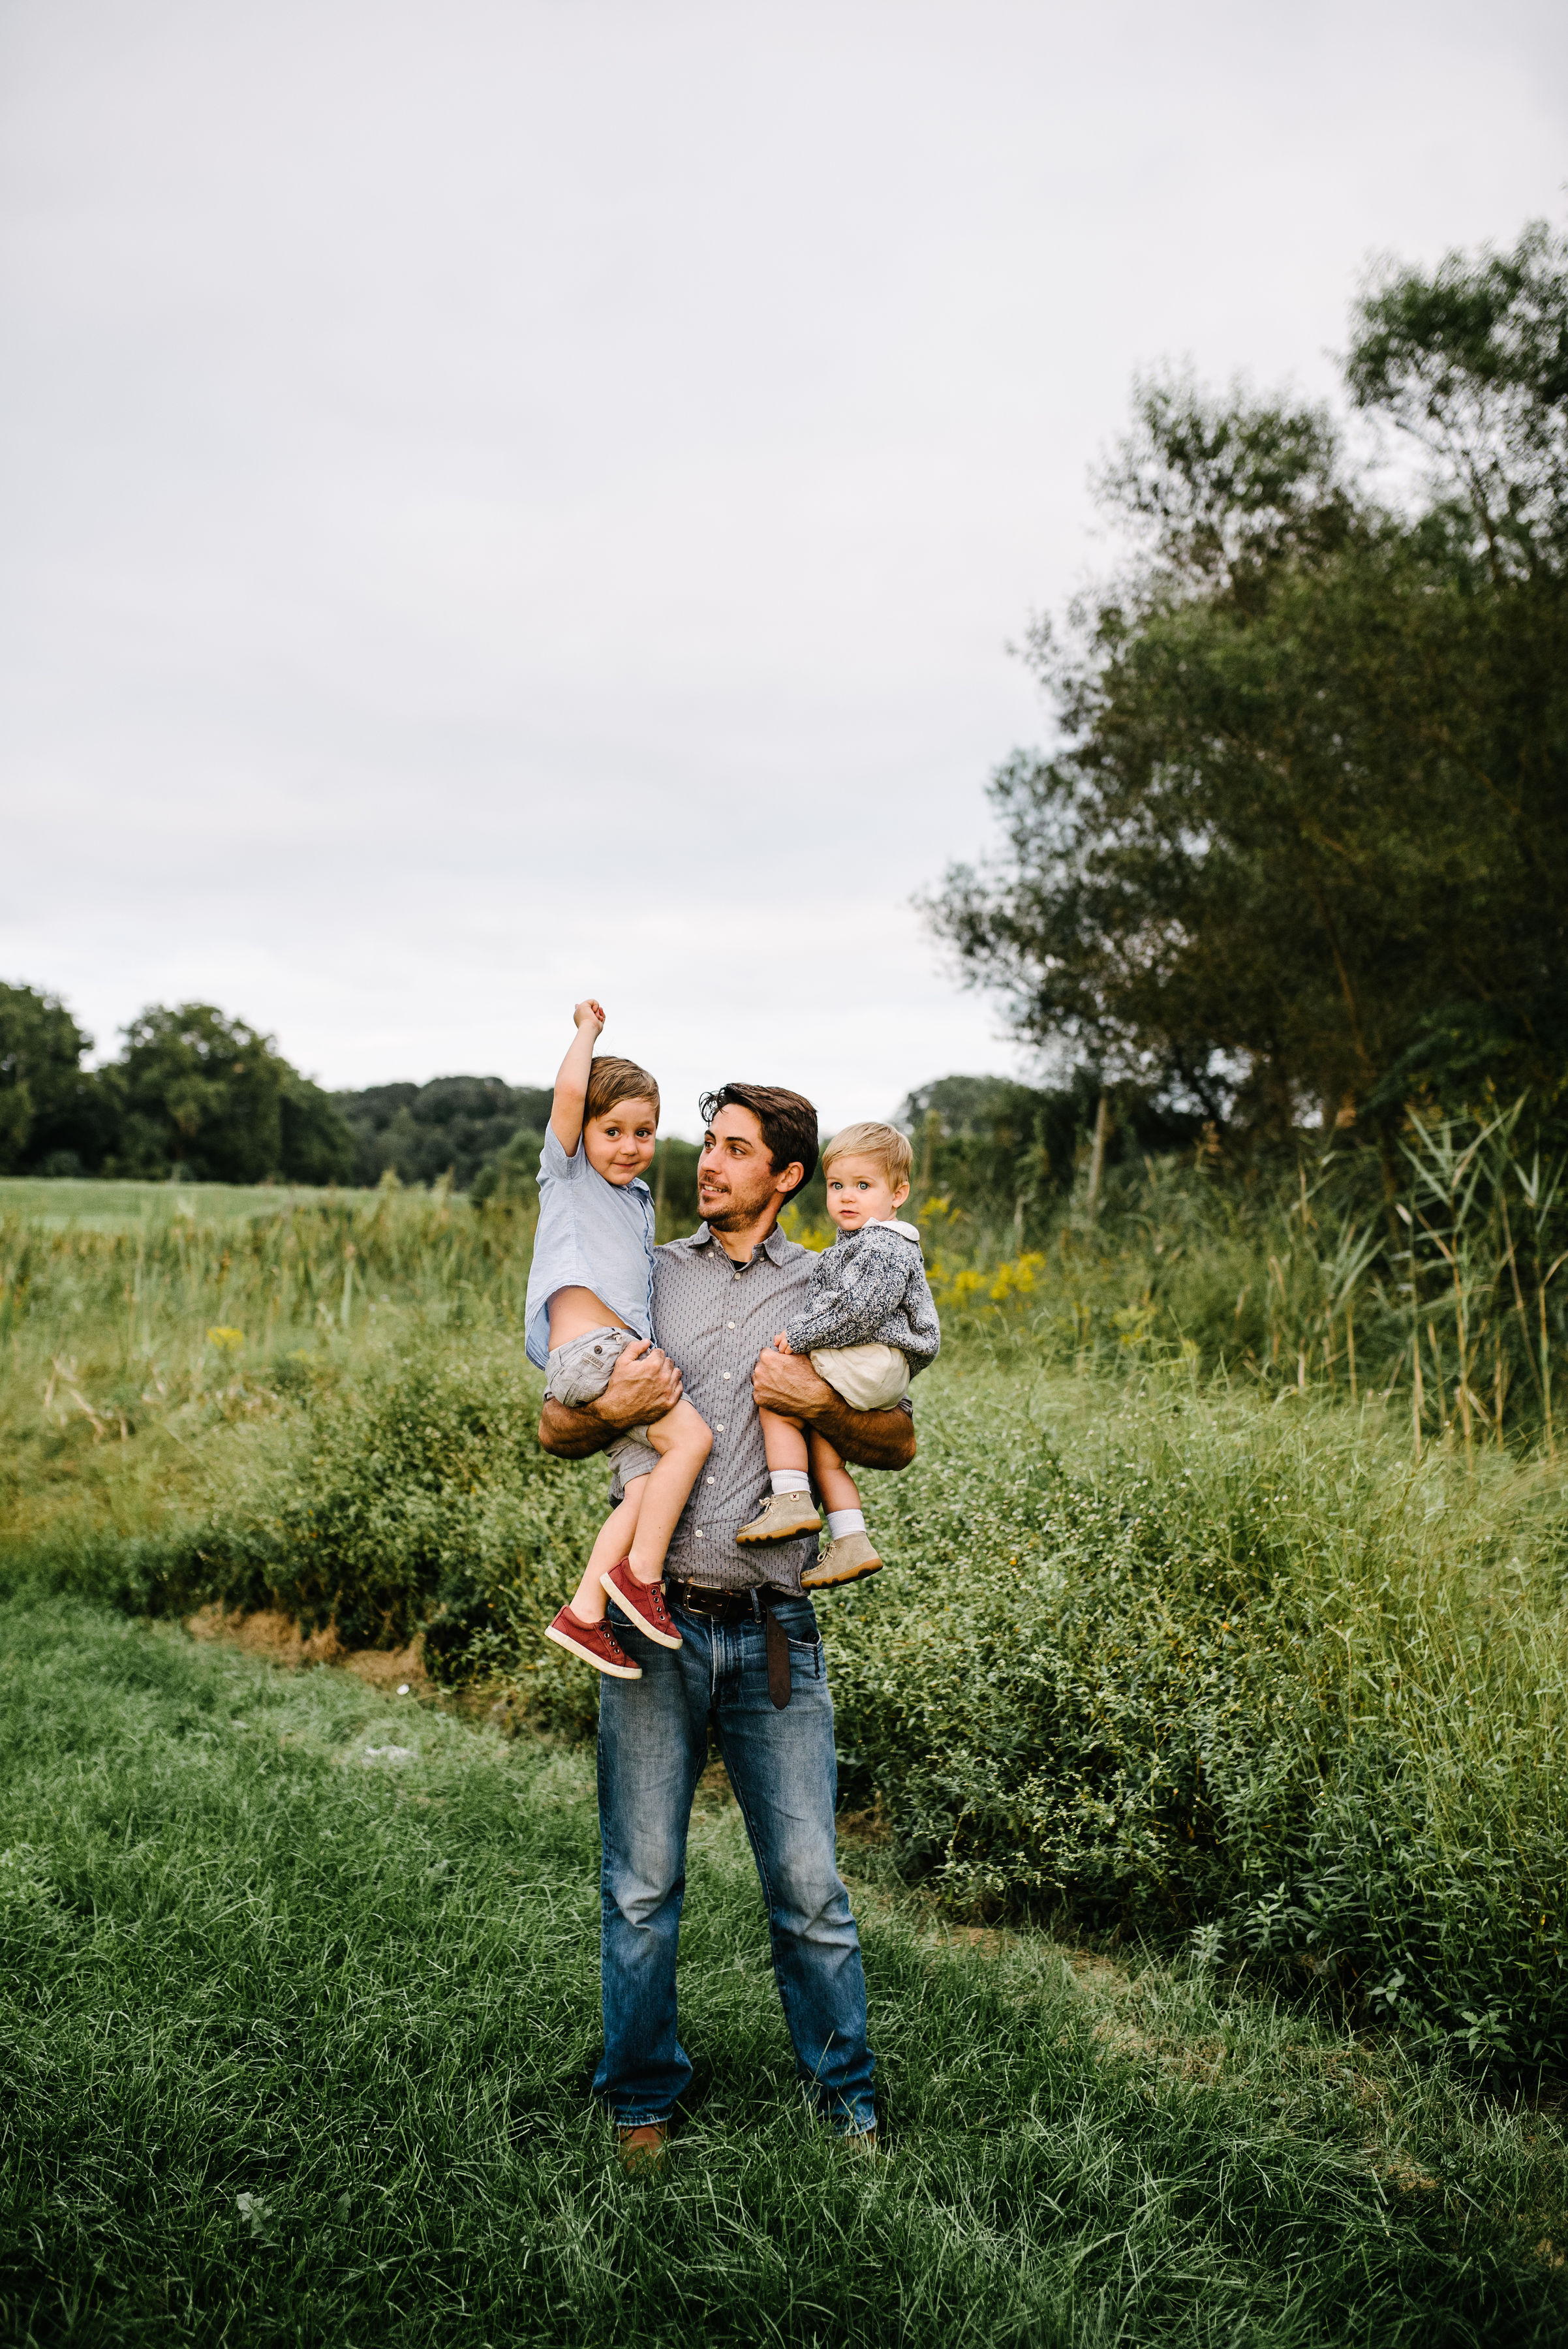 agpcollective_holmes_familysession-0229.jpg